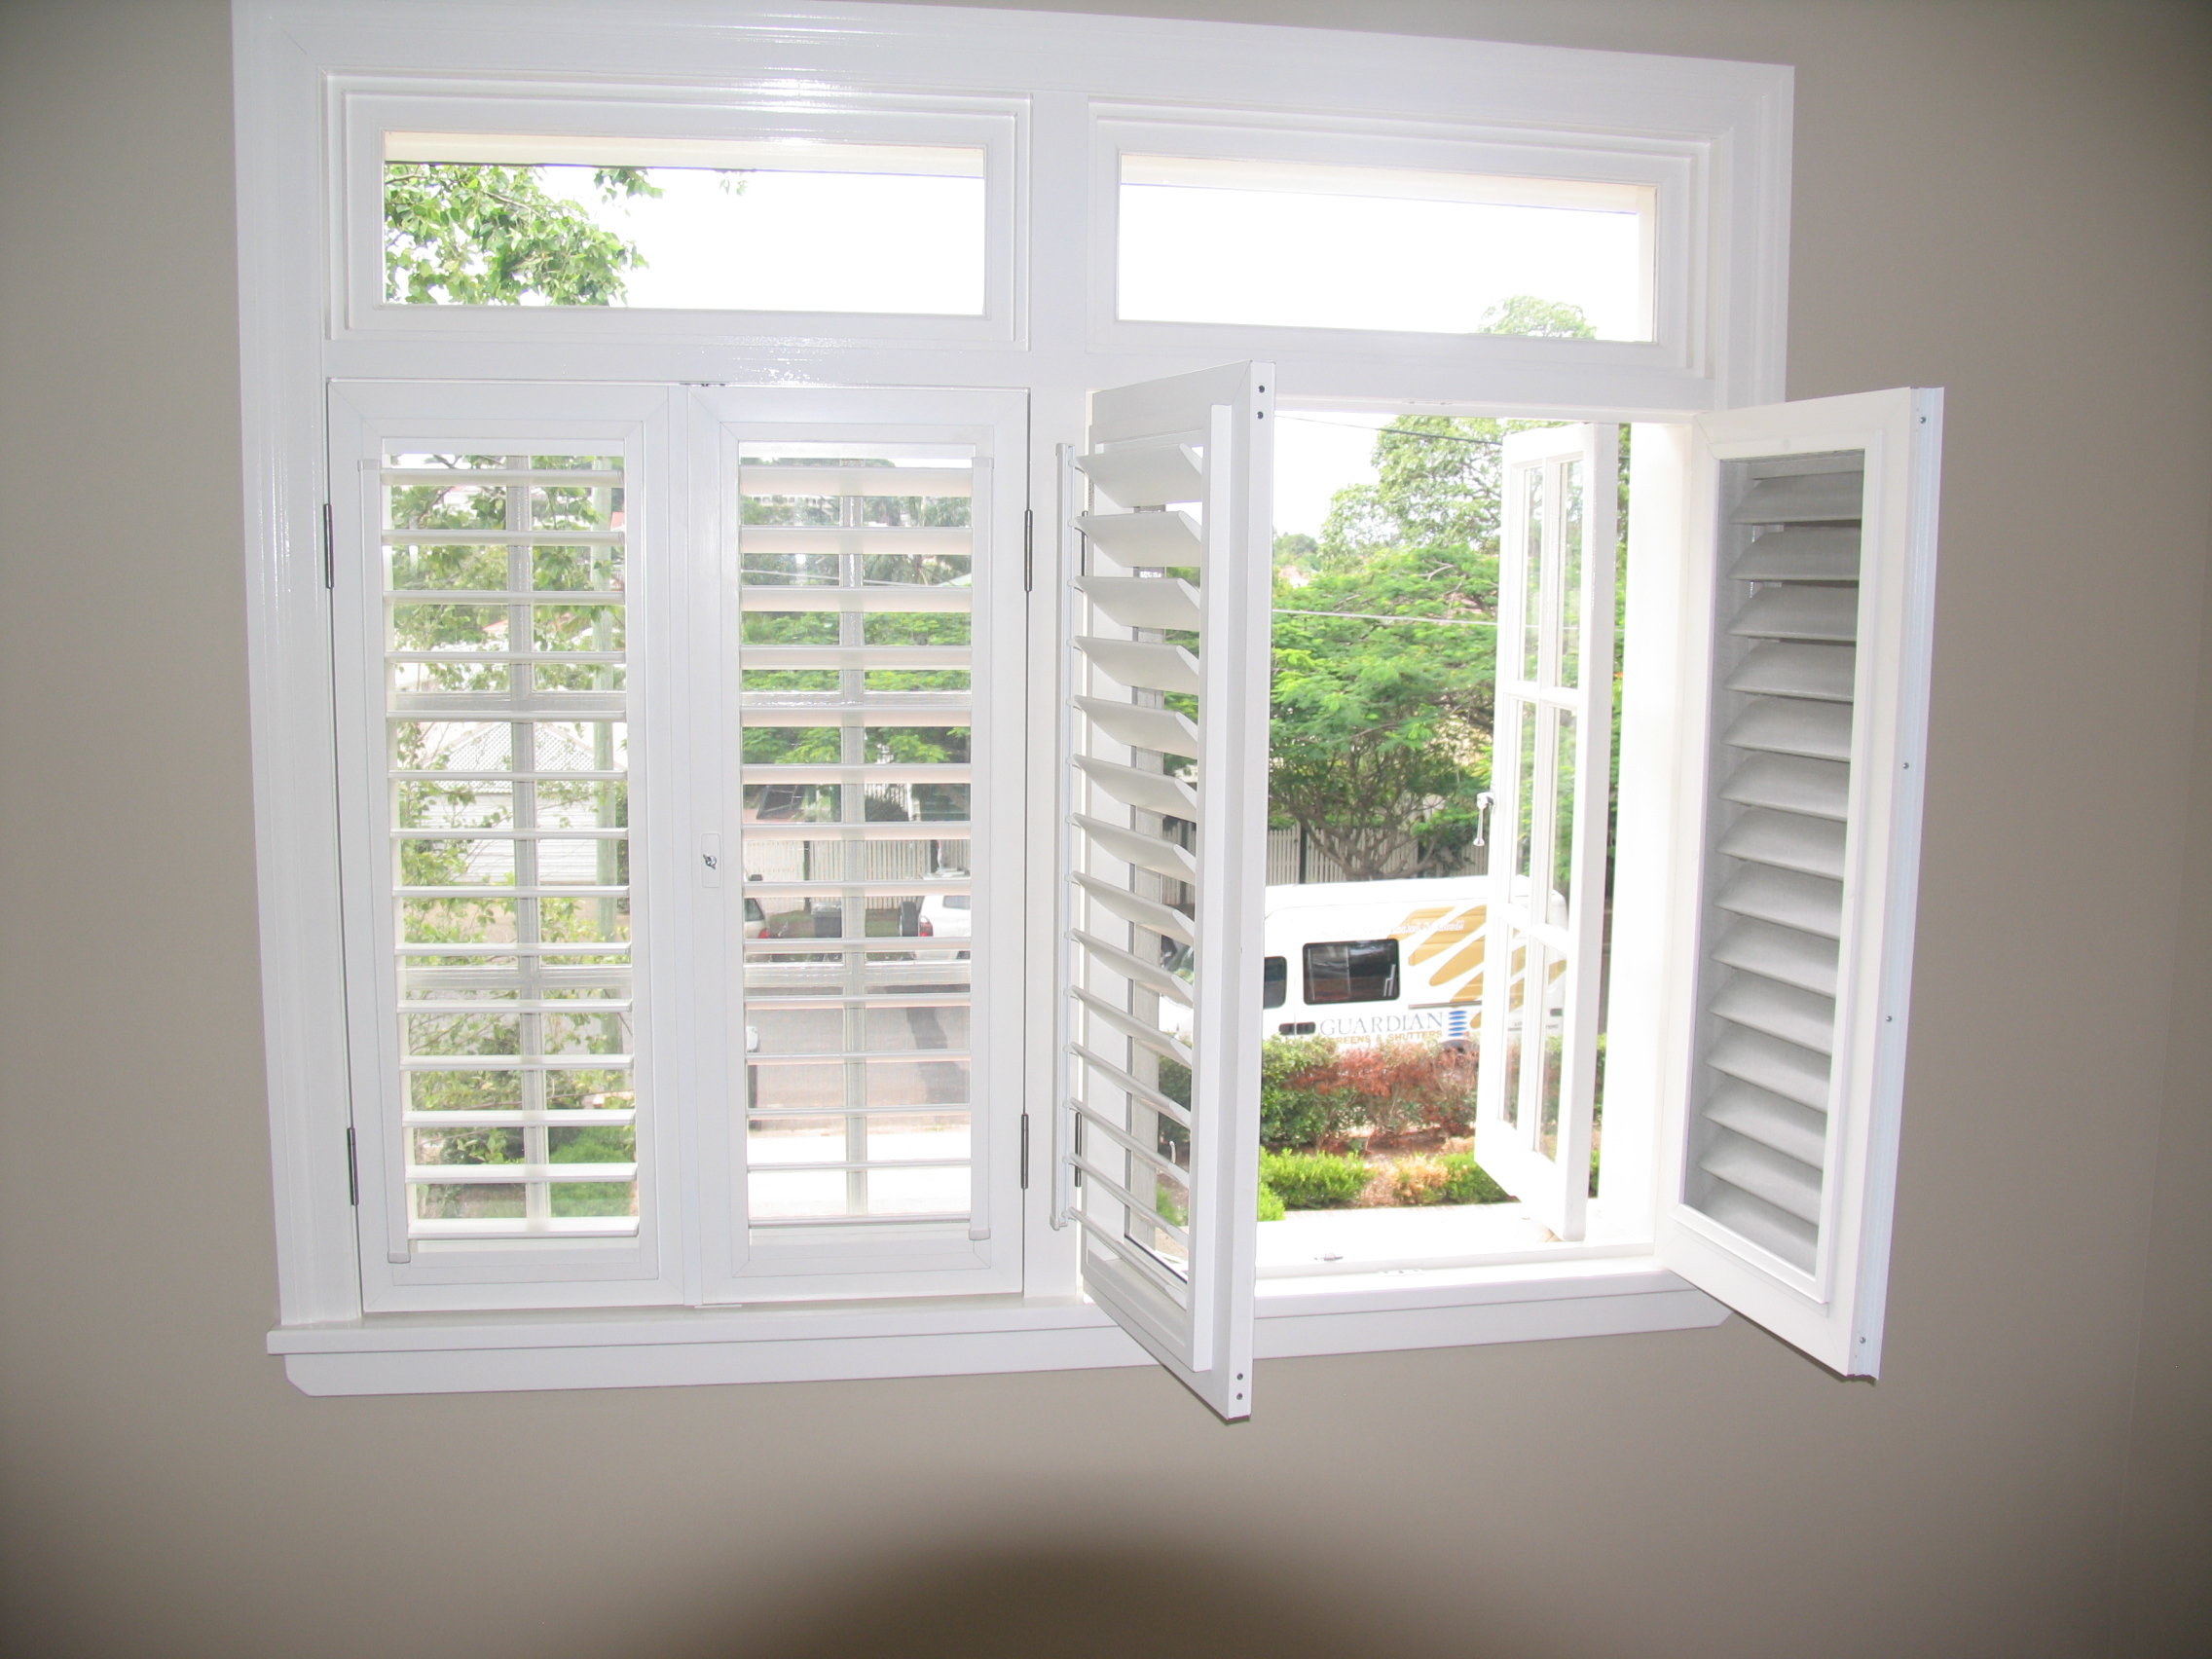 The guide how to calculate the plantation shutters cost homesfeed - Types shutters consider windows ...